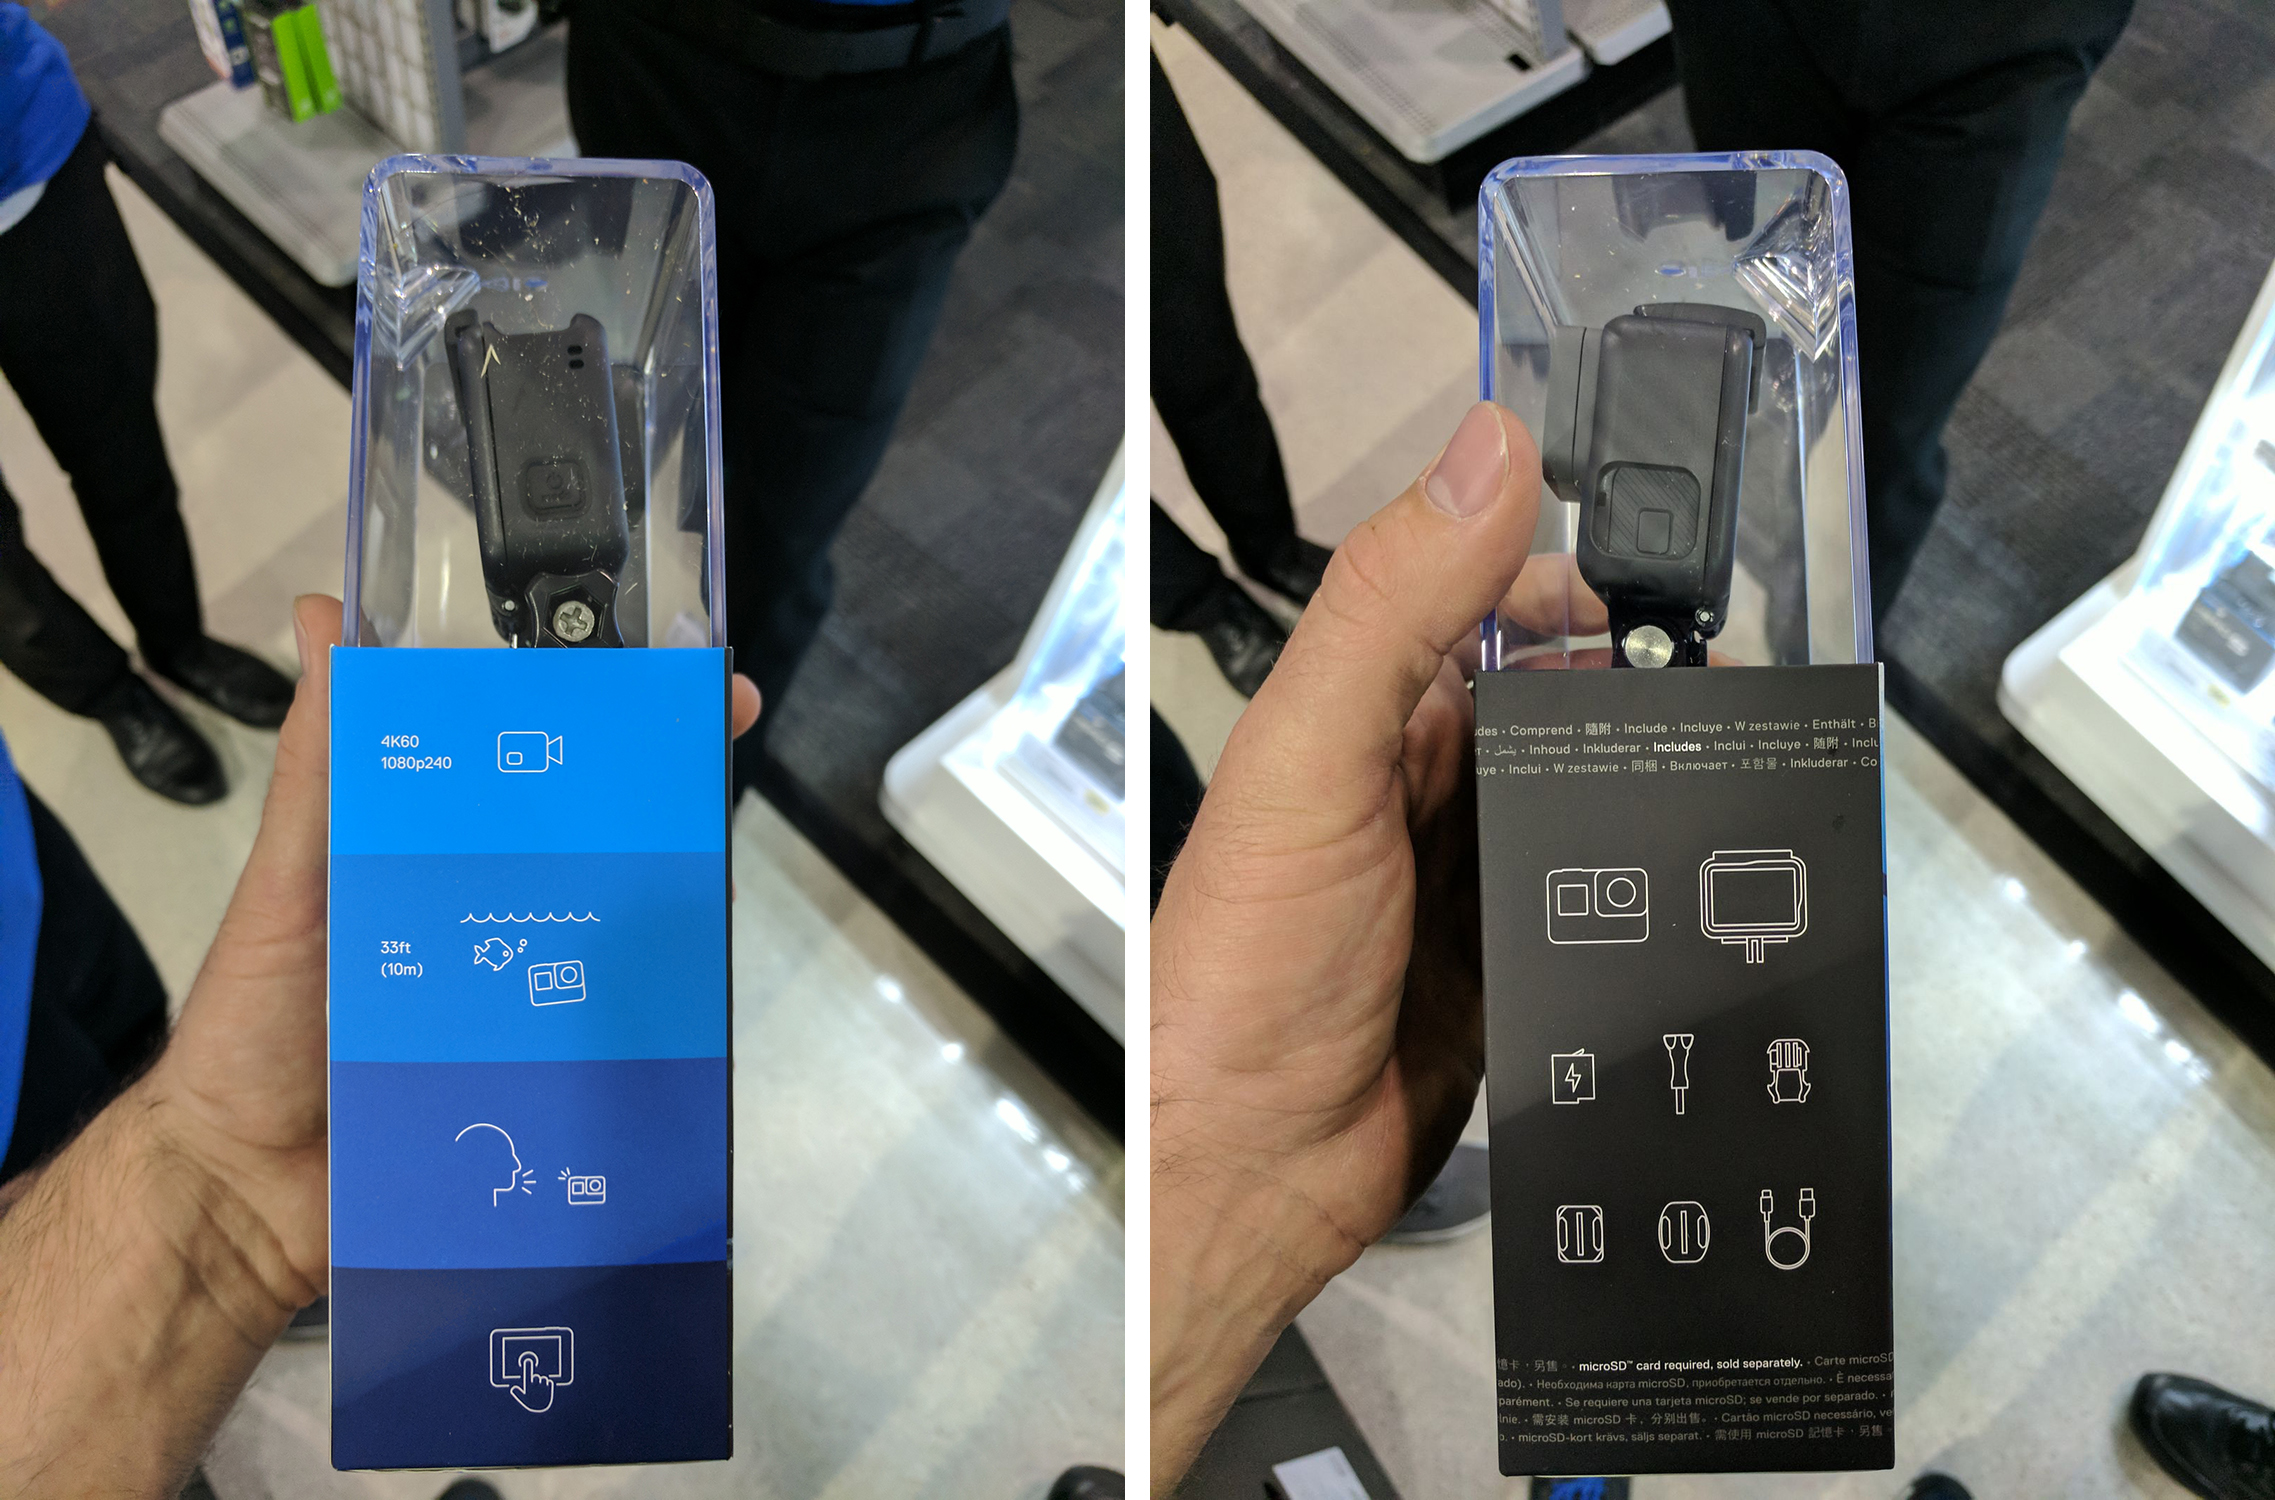 GoPro Hero6 leaked again: Shoots 4K at 60fps, 1080p at